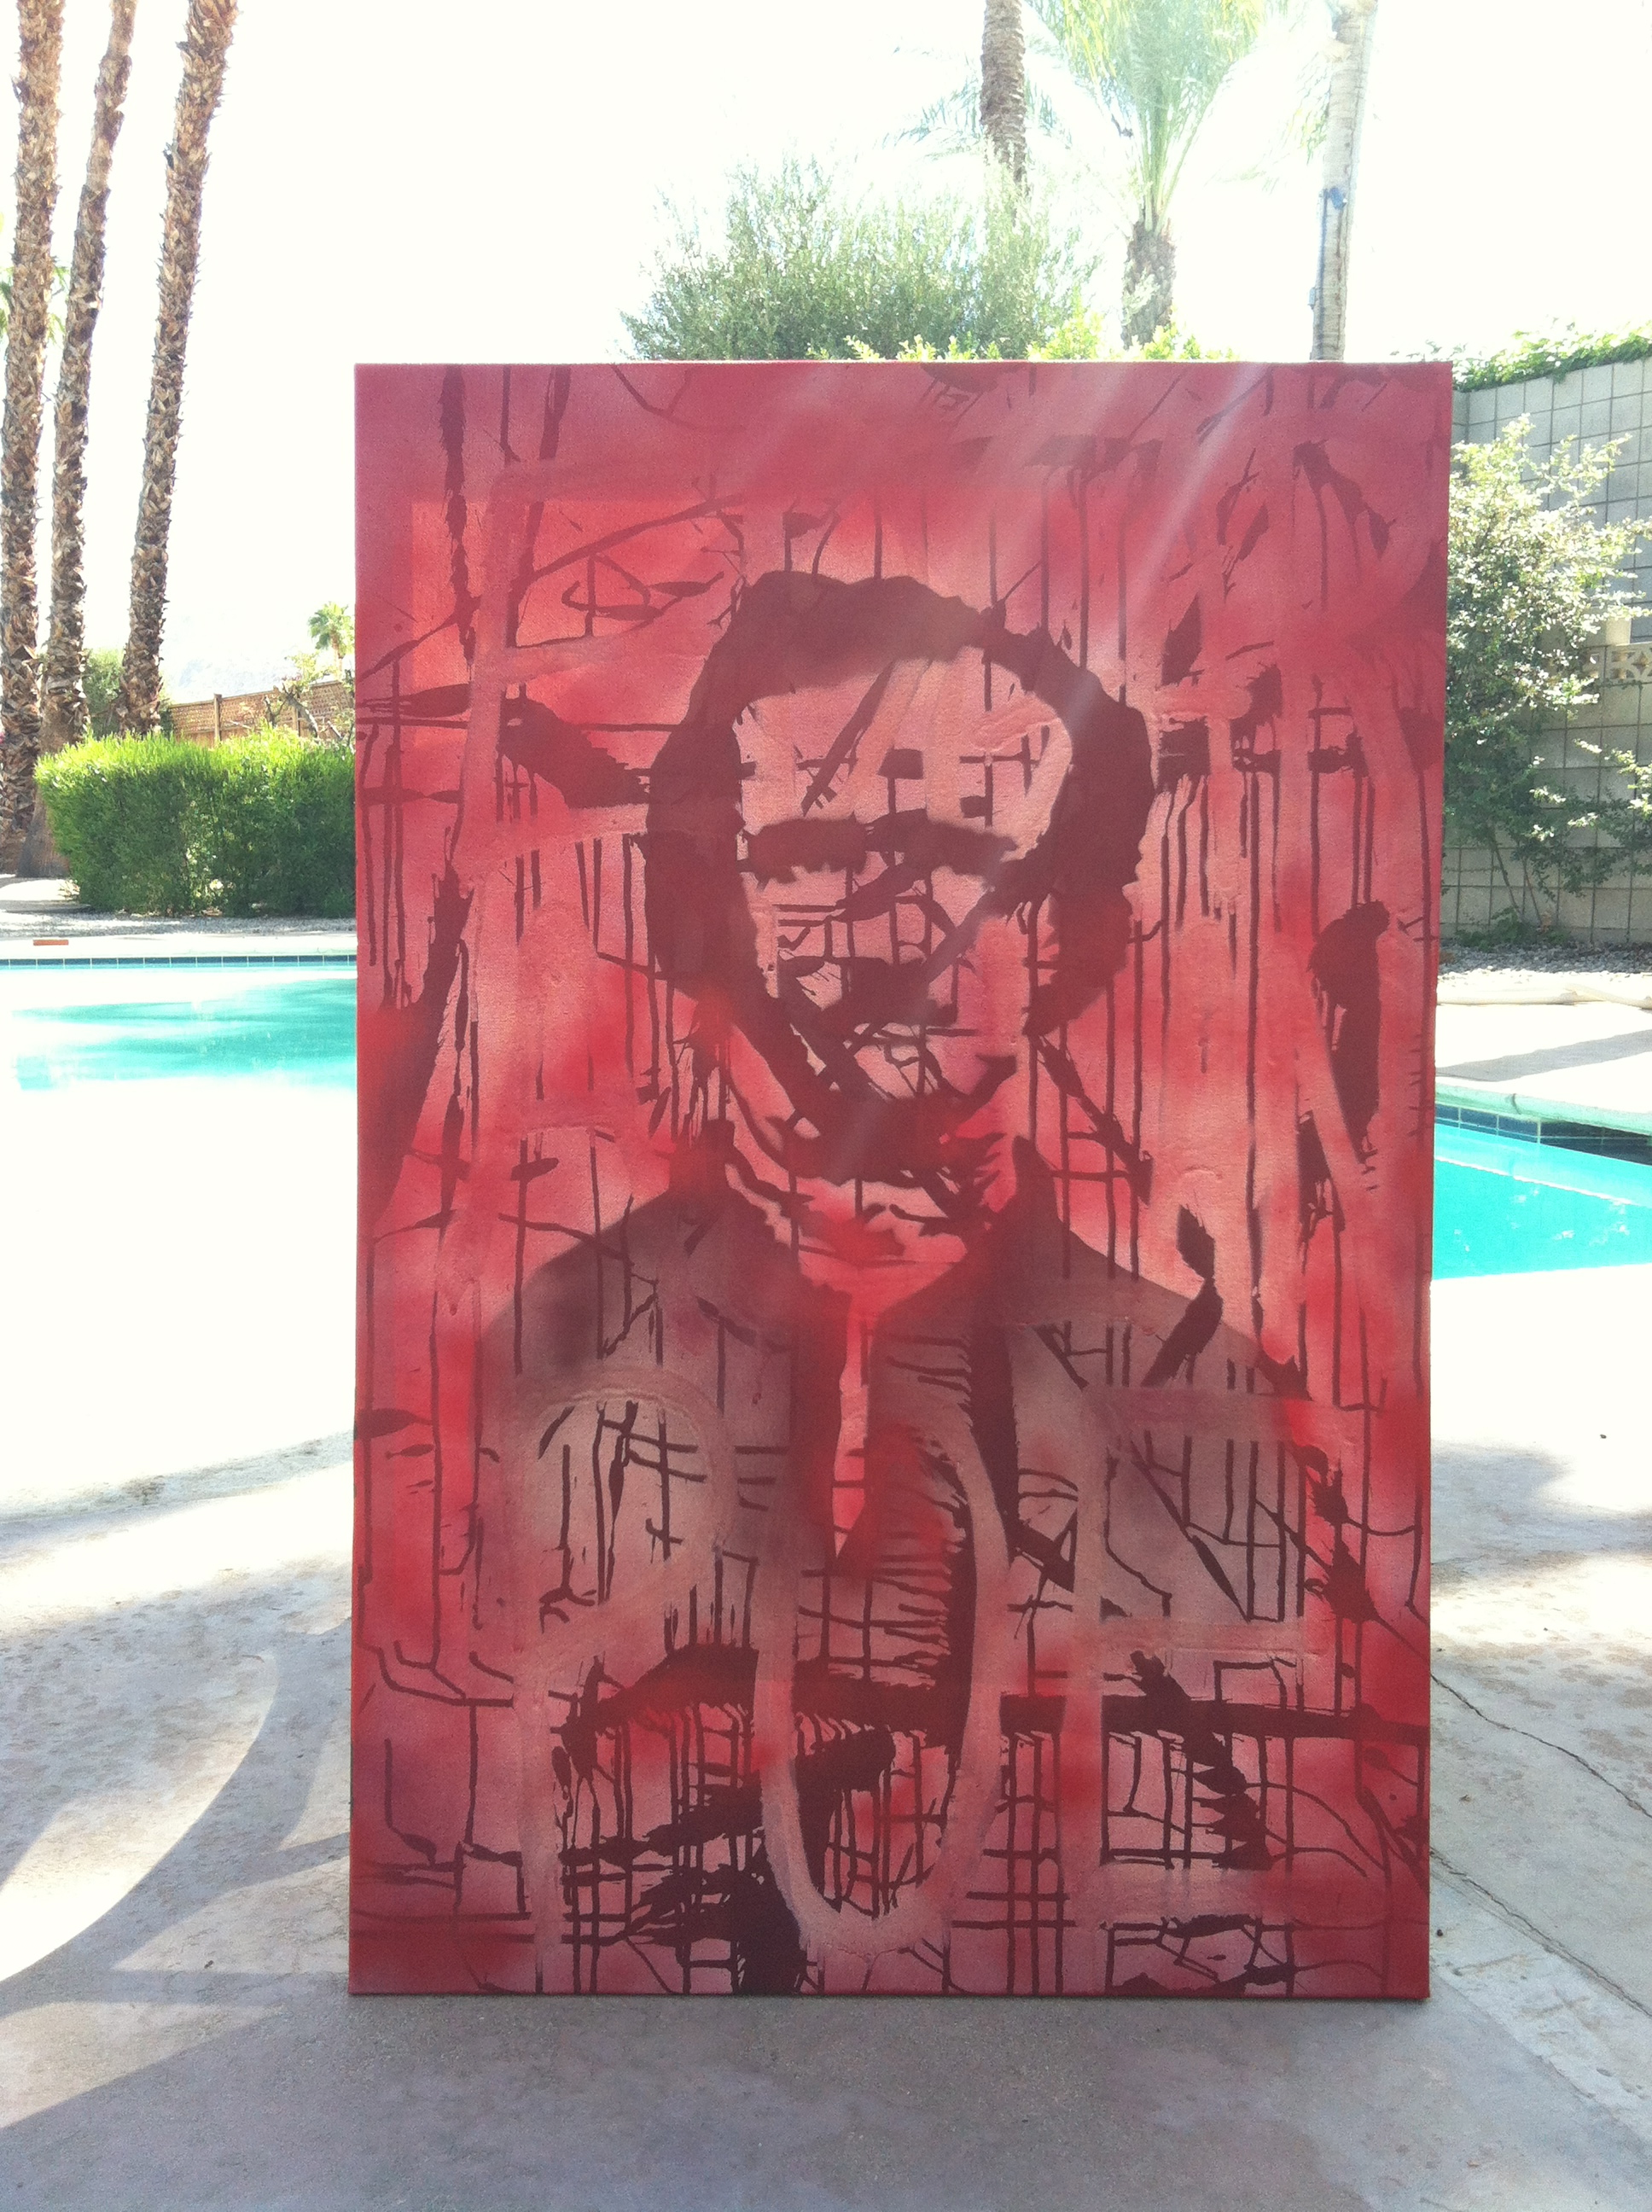 Edgar Allan Poe Poolside in Palm Springs / photo: Matt Smiley